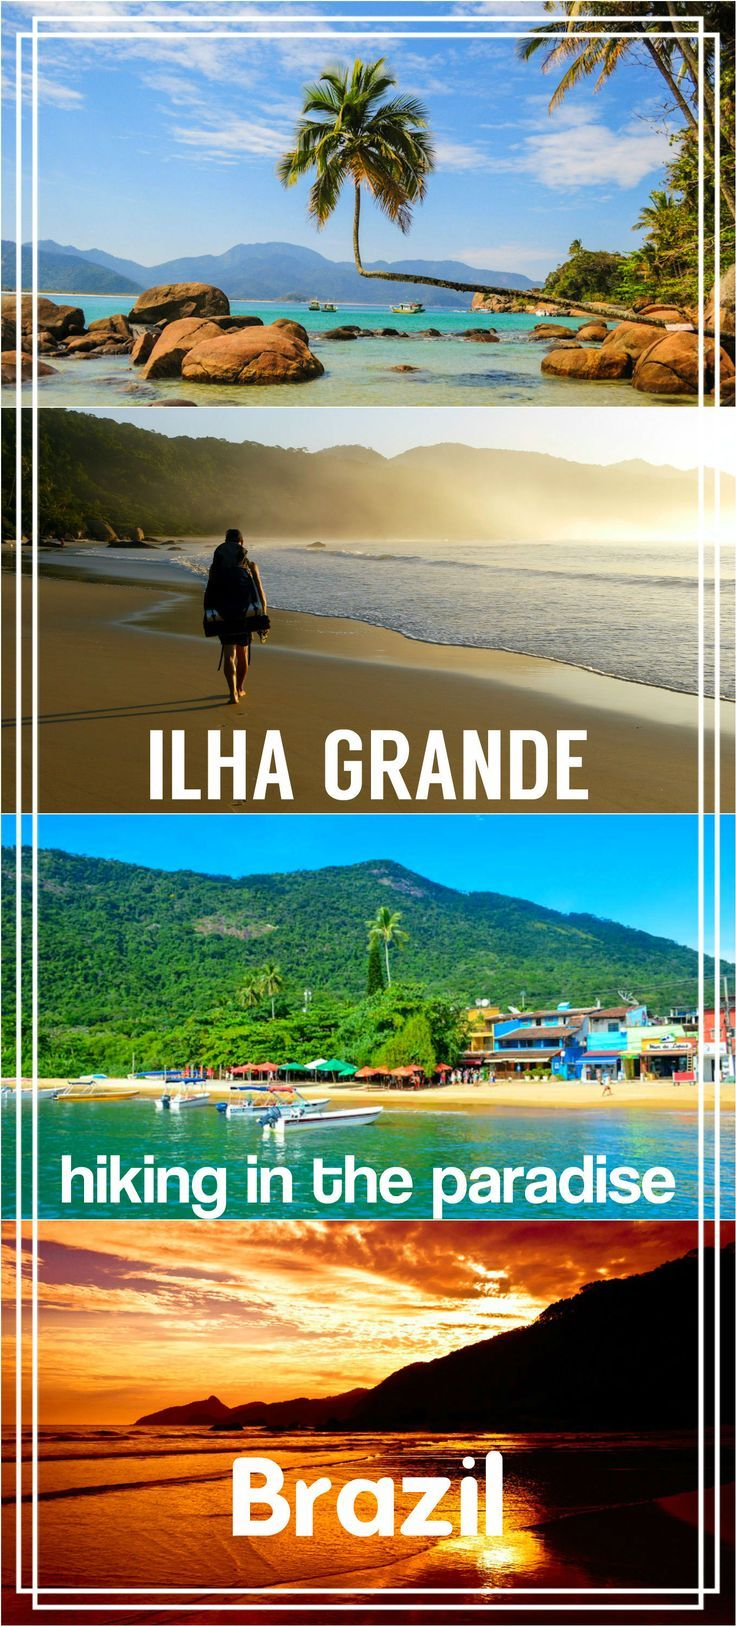 Complete guide to hiking around Ilha Grande, a paradise island in Brazil. Hiking route, map, how to get by public transport, ferry and bus timetable, where to camp, best beaches, local food places and many photos. All you need to know to plan a hike.